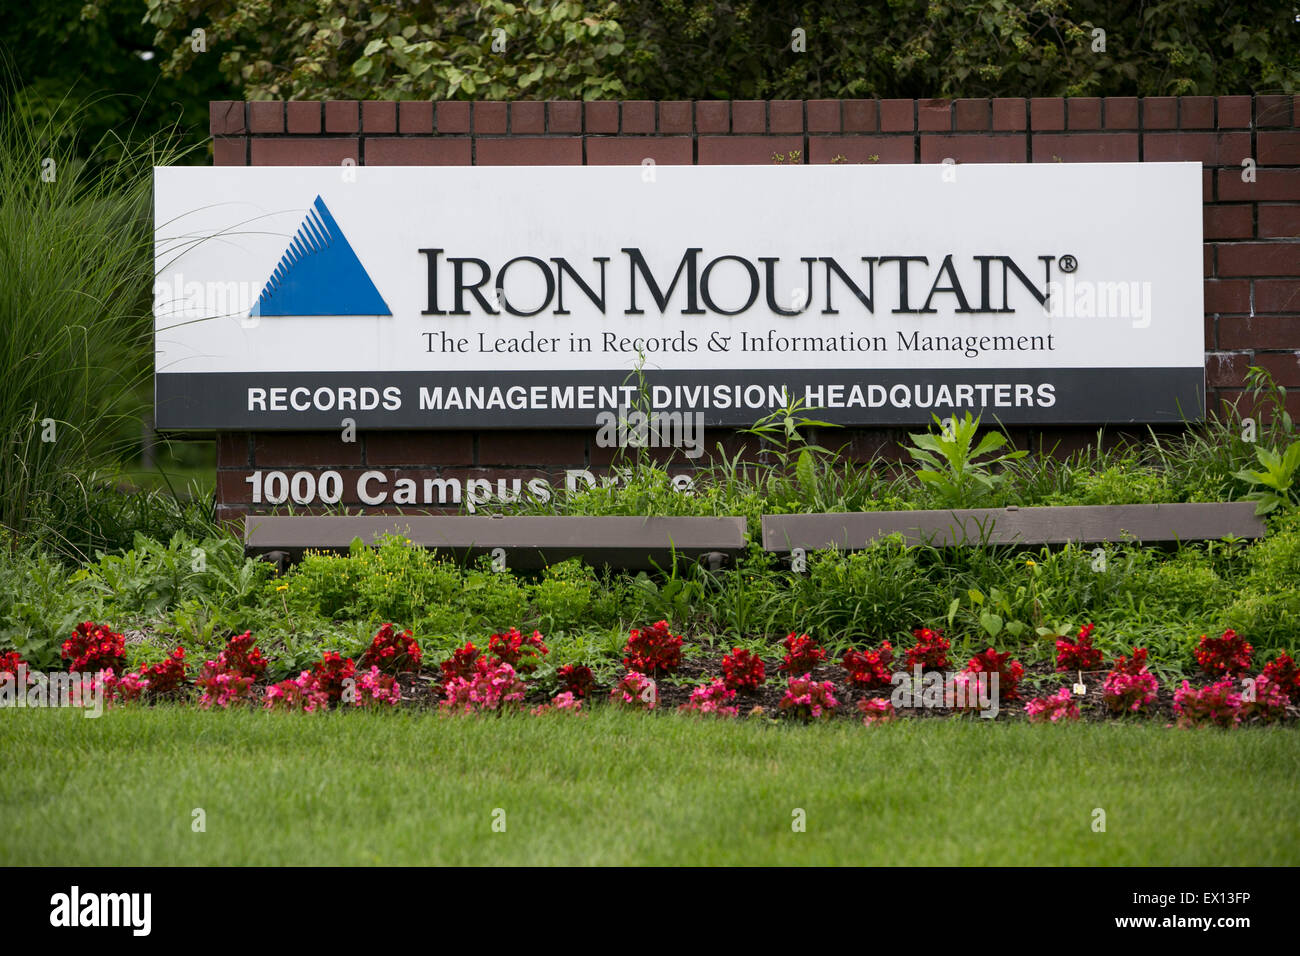 A logo sign outside the headquarters of the Iron Mountain Records Management Division in Collegeville, Pennsylvania. - Stock Image